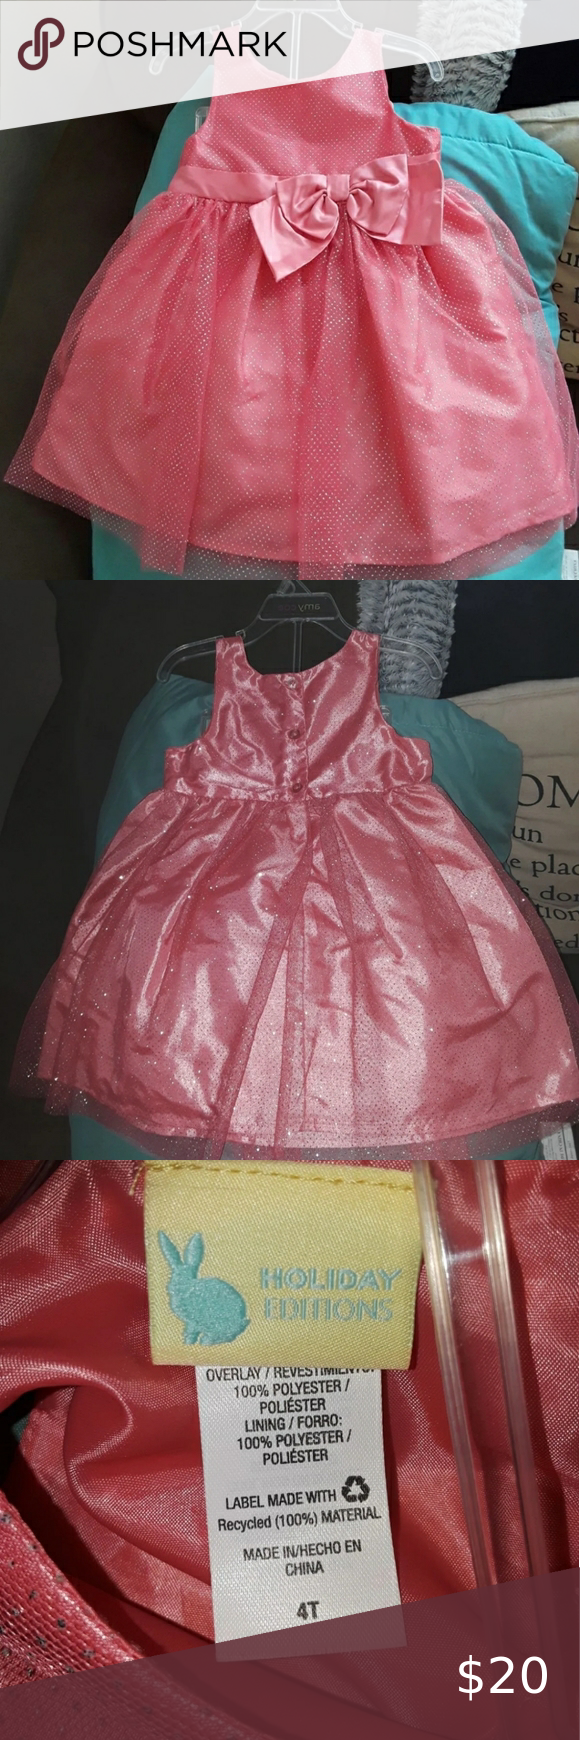 Kids Toddler Pink Dress Toddlers 4t Easter Edition Pink Dress With Big Pink Bow Cute For Any Formal Event Wedding Ea Pink Toddler Dress Pink Dress Dresses [ 1740 x 580 Pixel ]